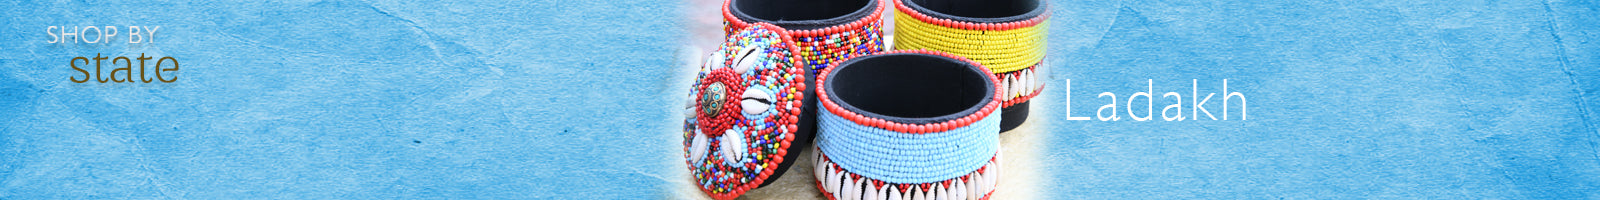 Buy Indian Handicrafts Online at The India Craft House for the perfect gift. Authentic Handcrafted Arts & Crafts from Ladakh. Support the Artisan. Promote Fair Trade